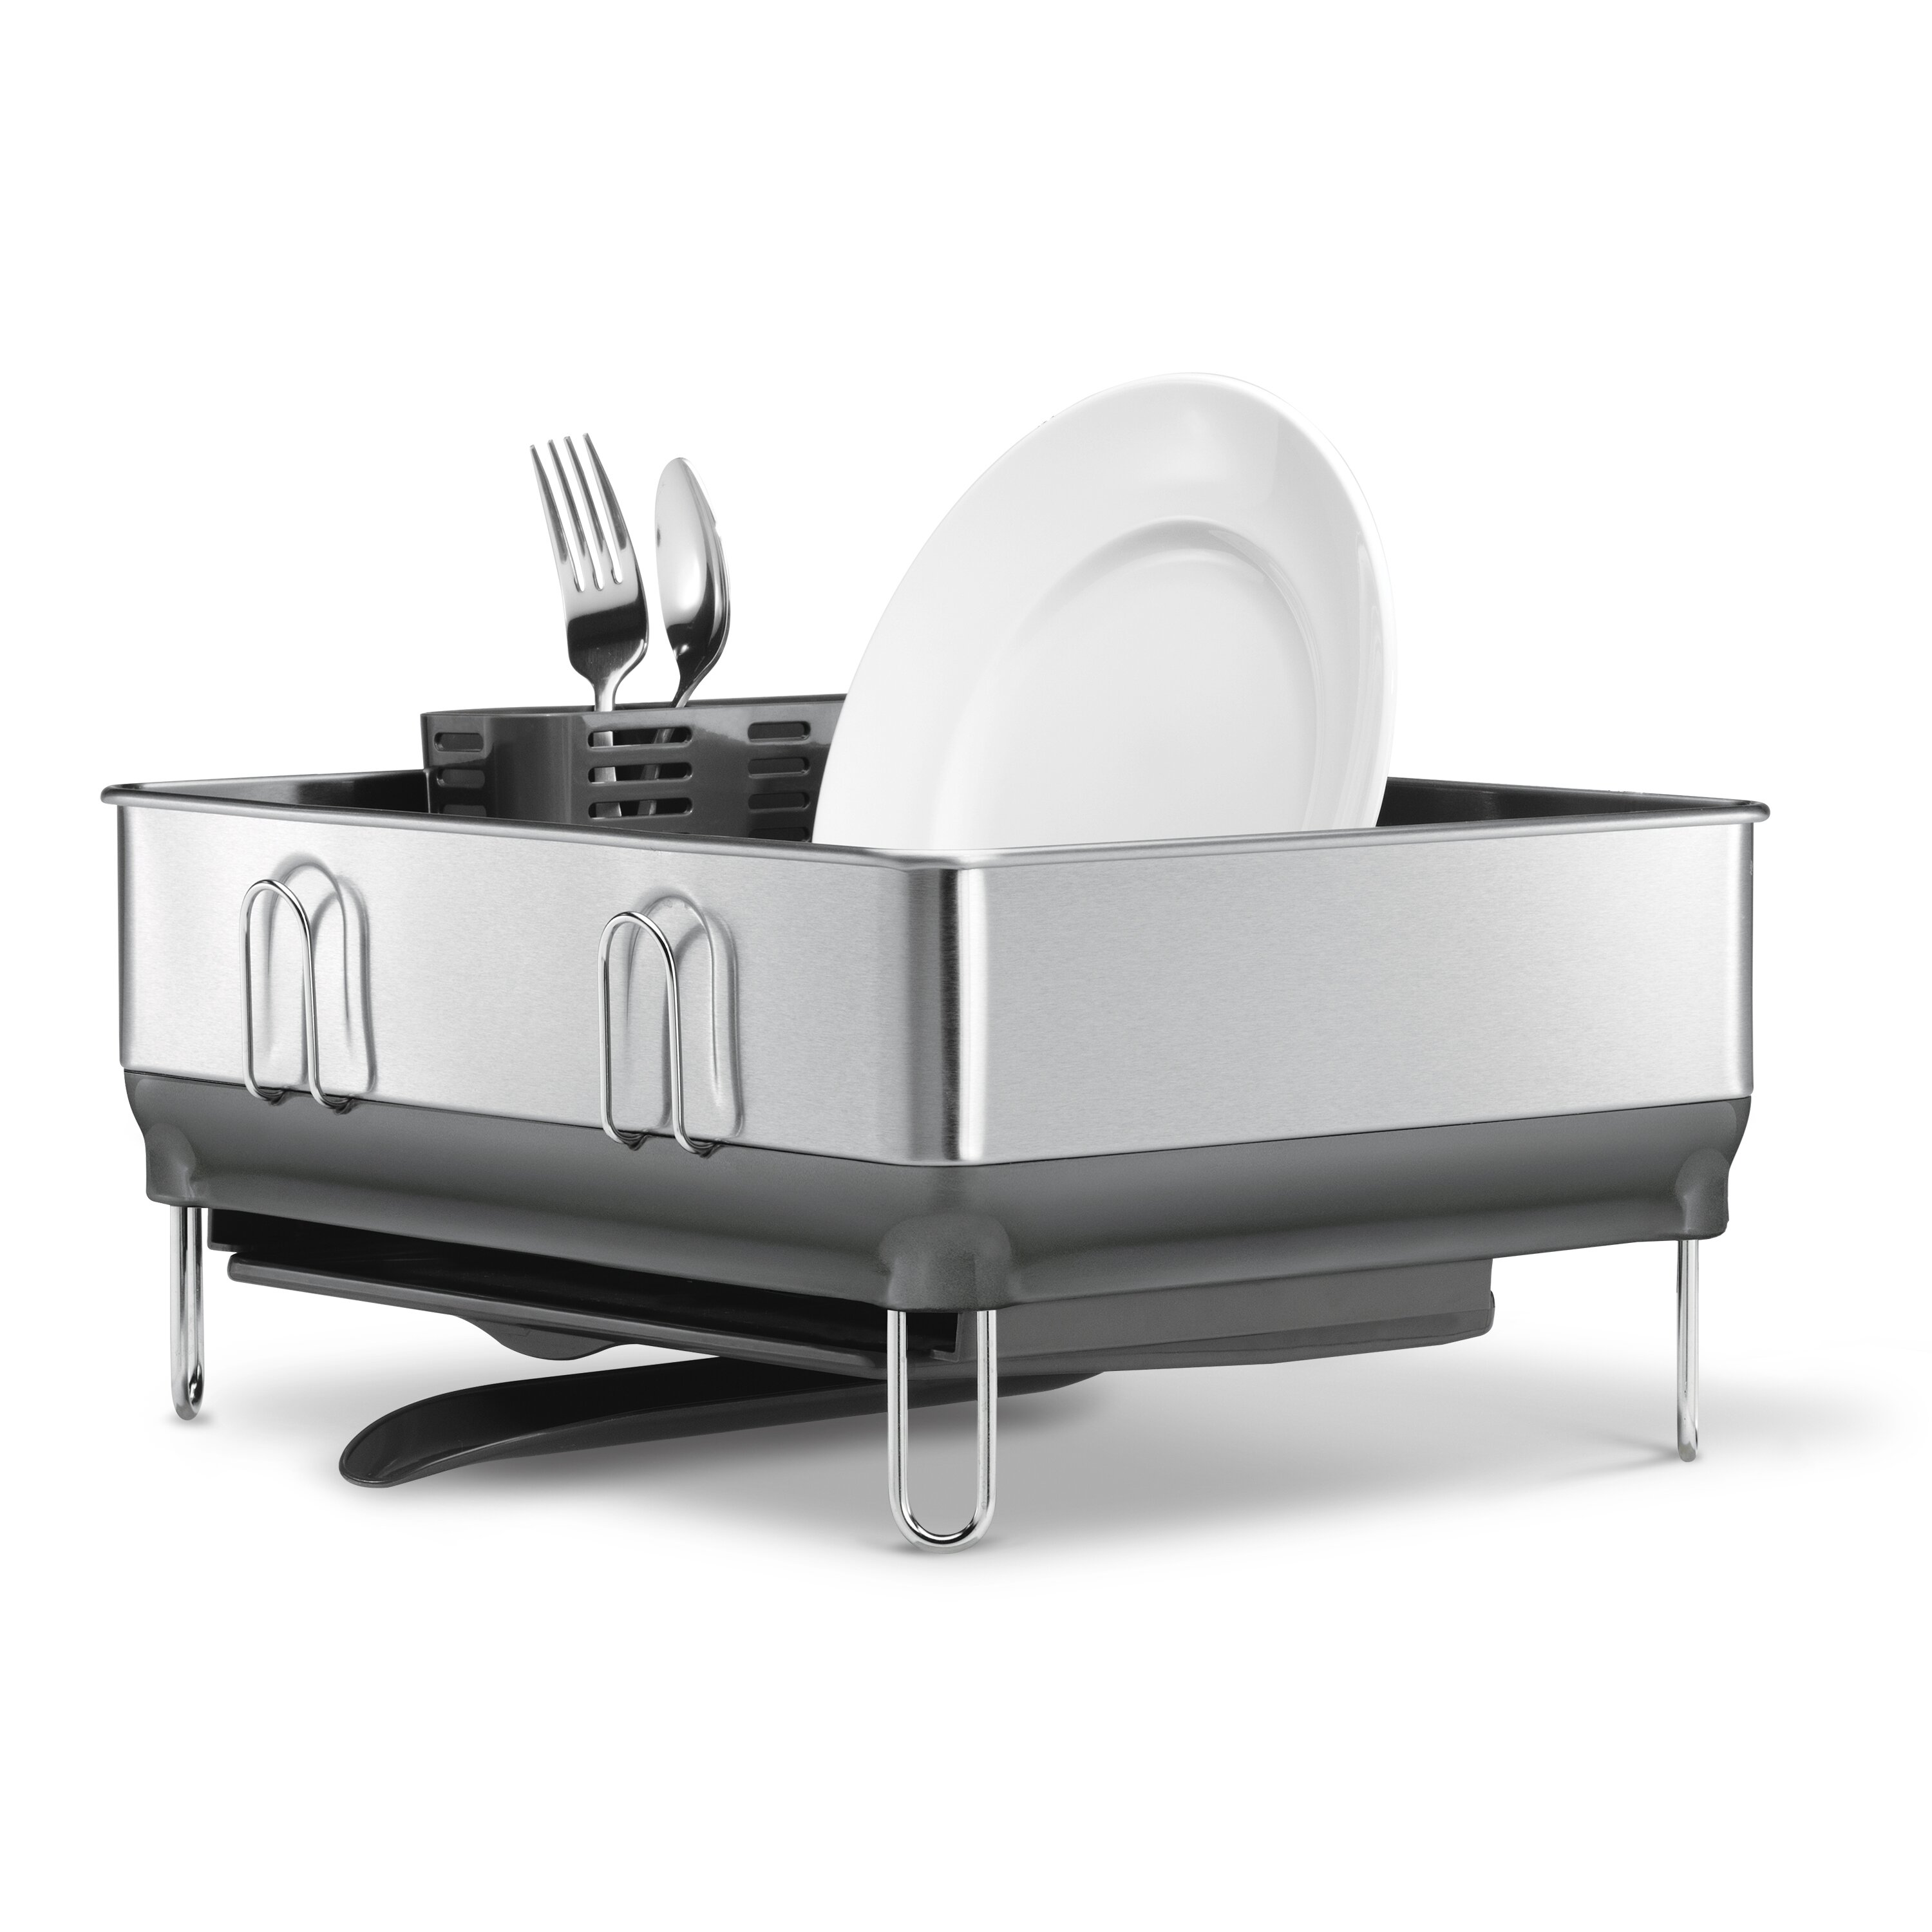 4471319d8554 KT1179 Compact Steel Frame Dish Rack Fingerprint-Proof Stainless Steel with  Plastic